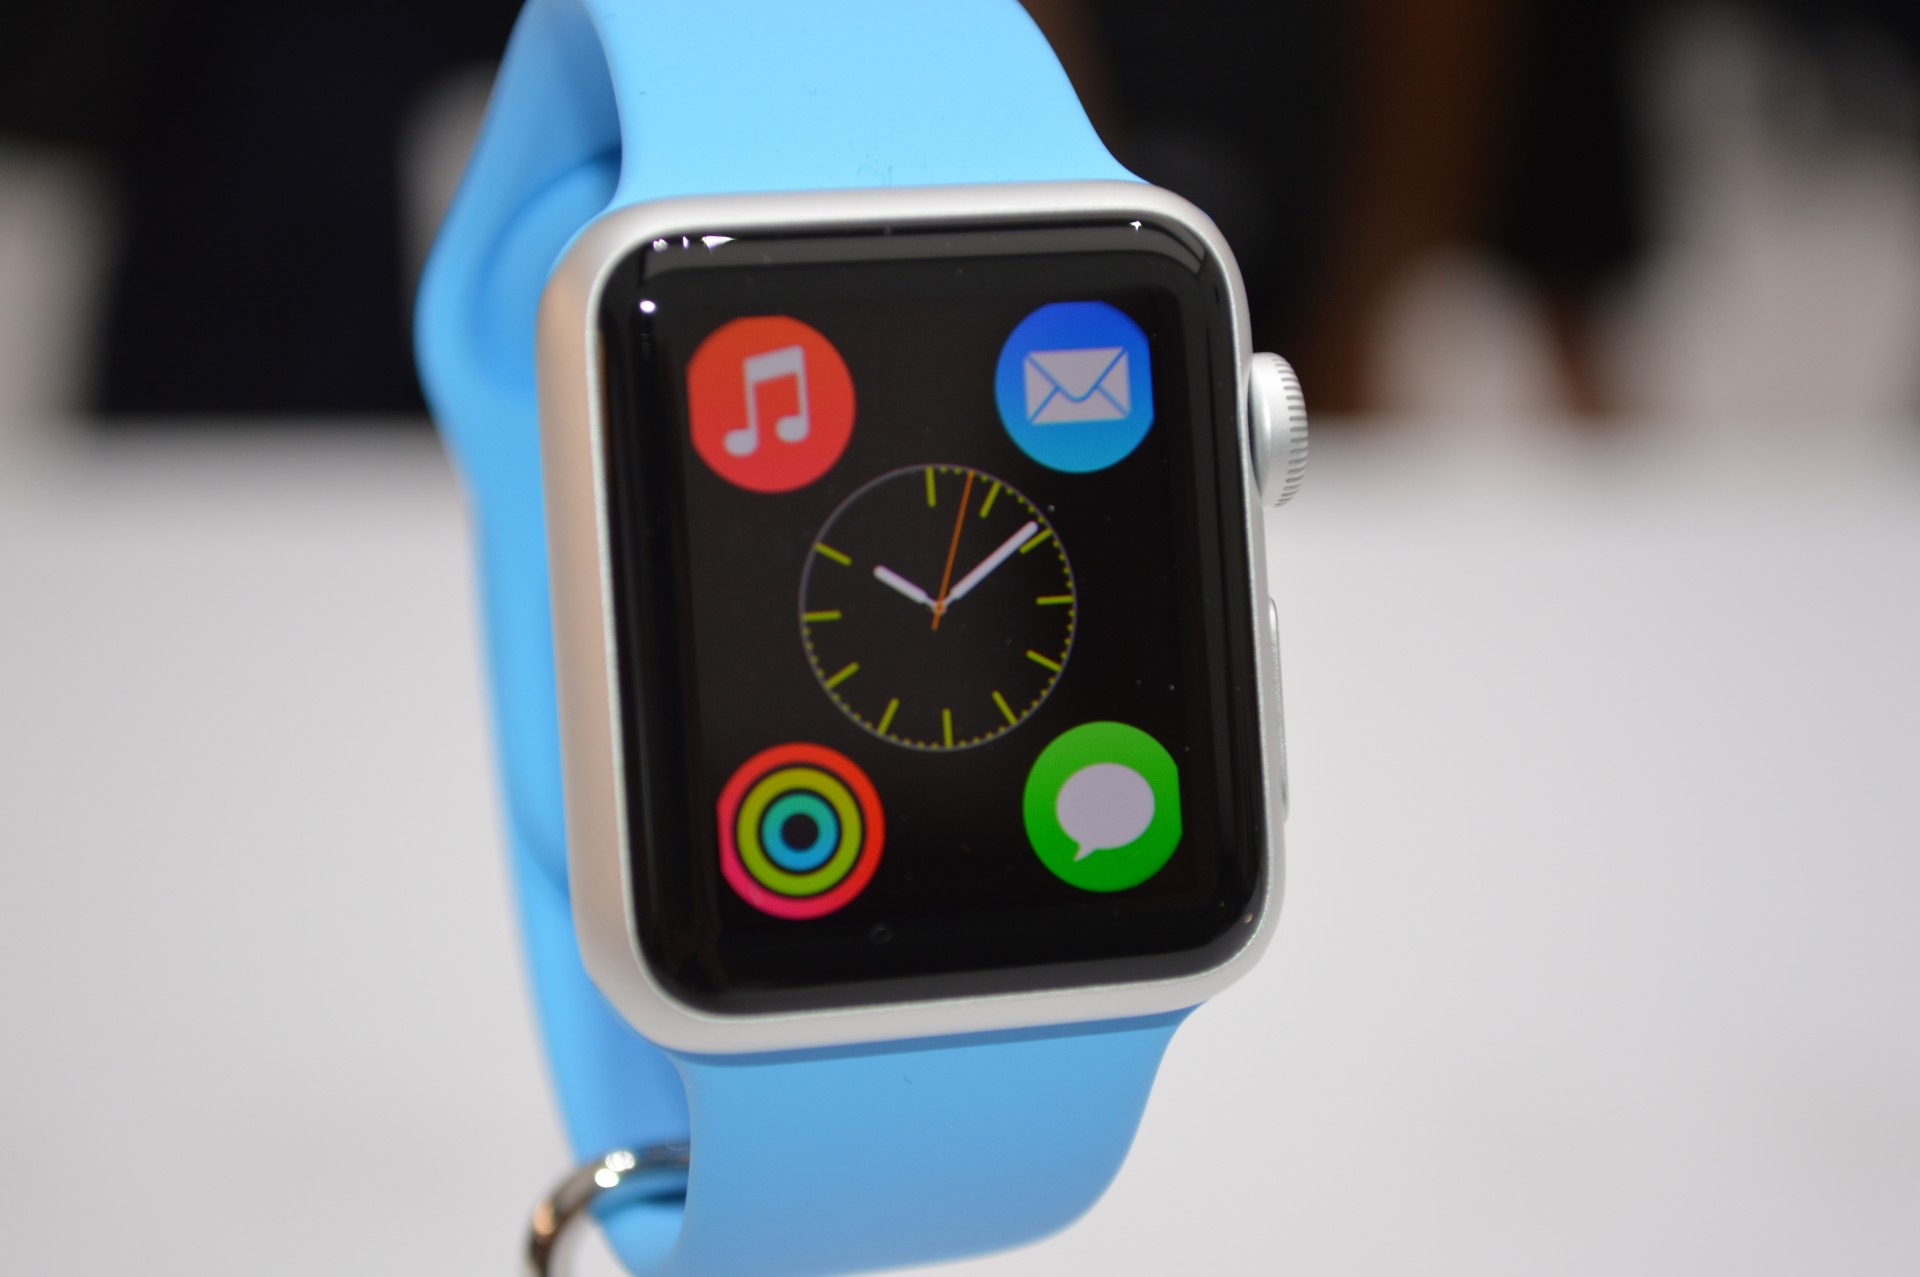 Come correggere la luminosità su Apple Watch